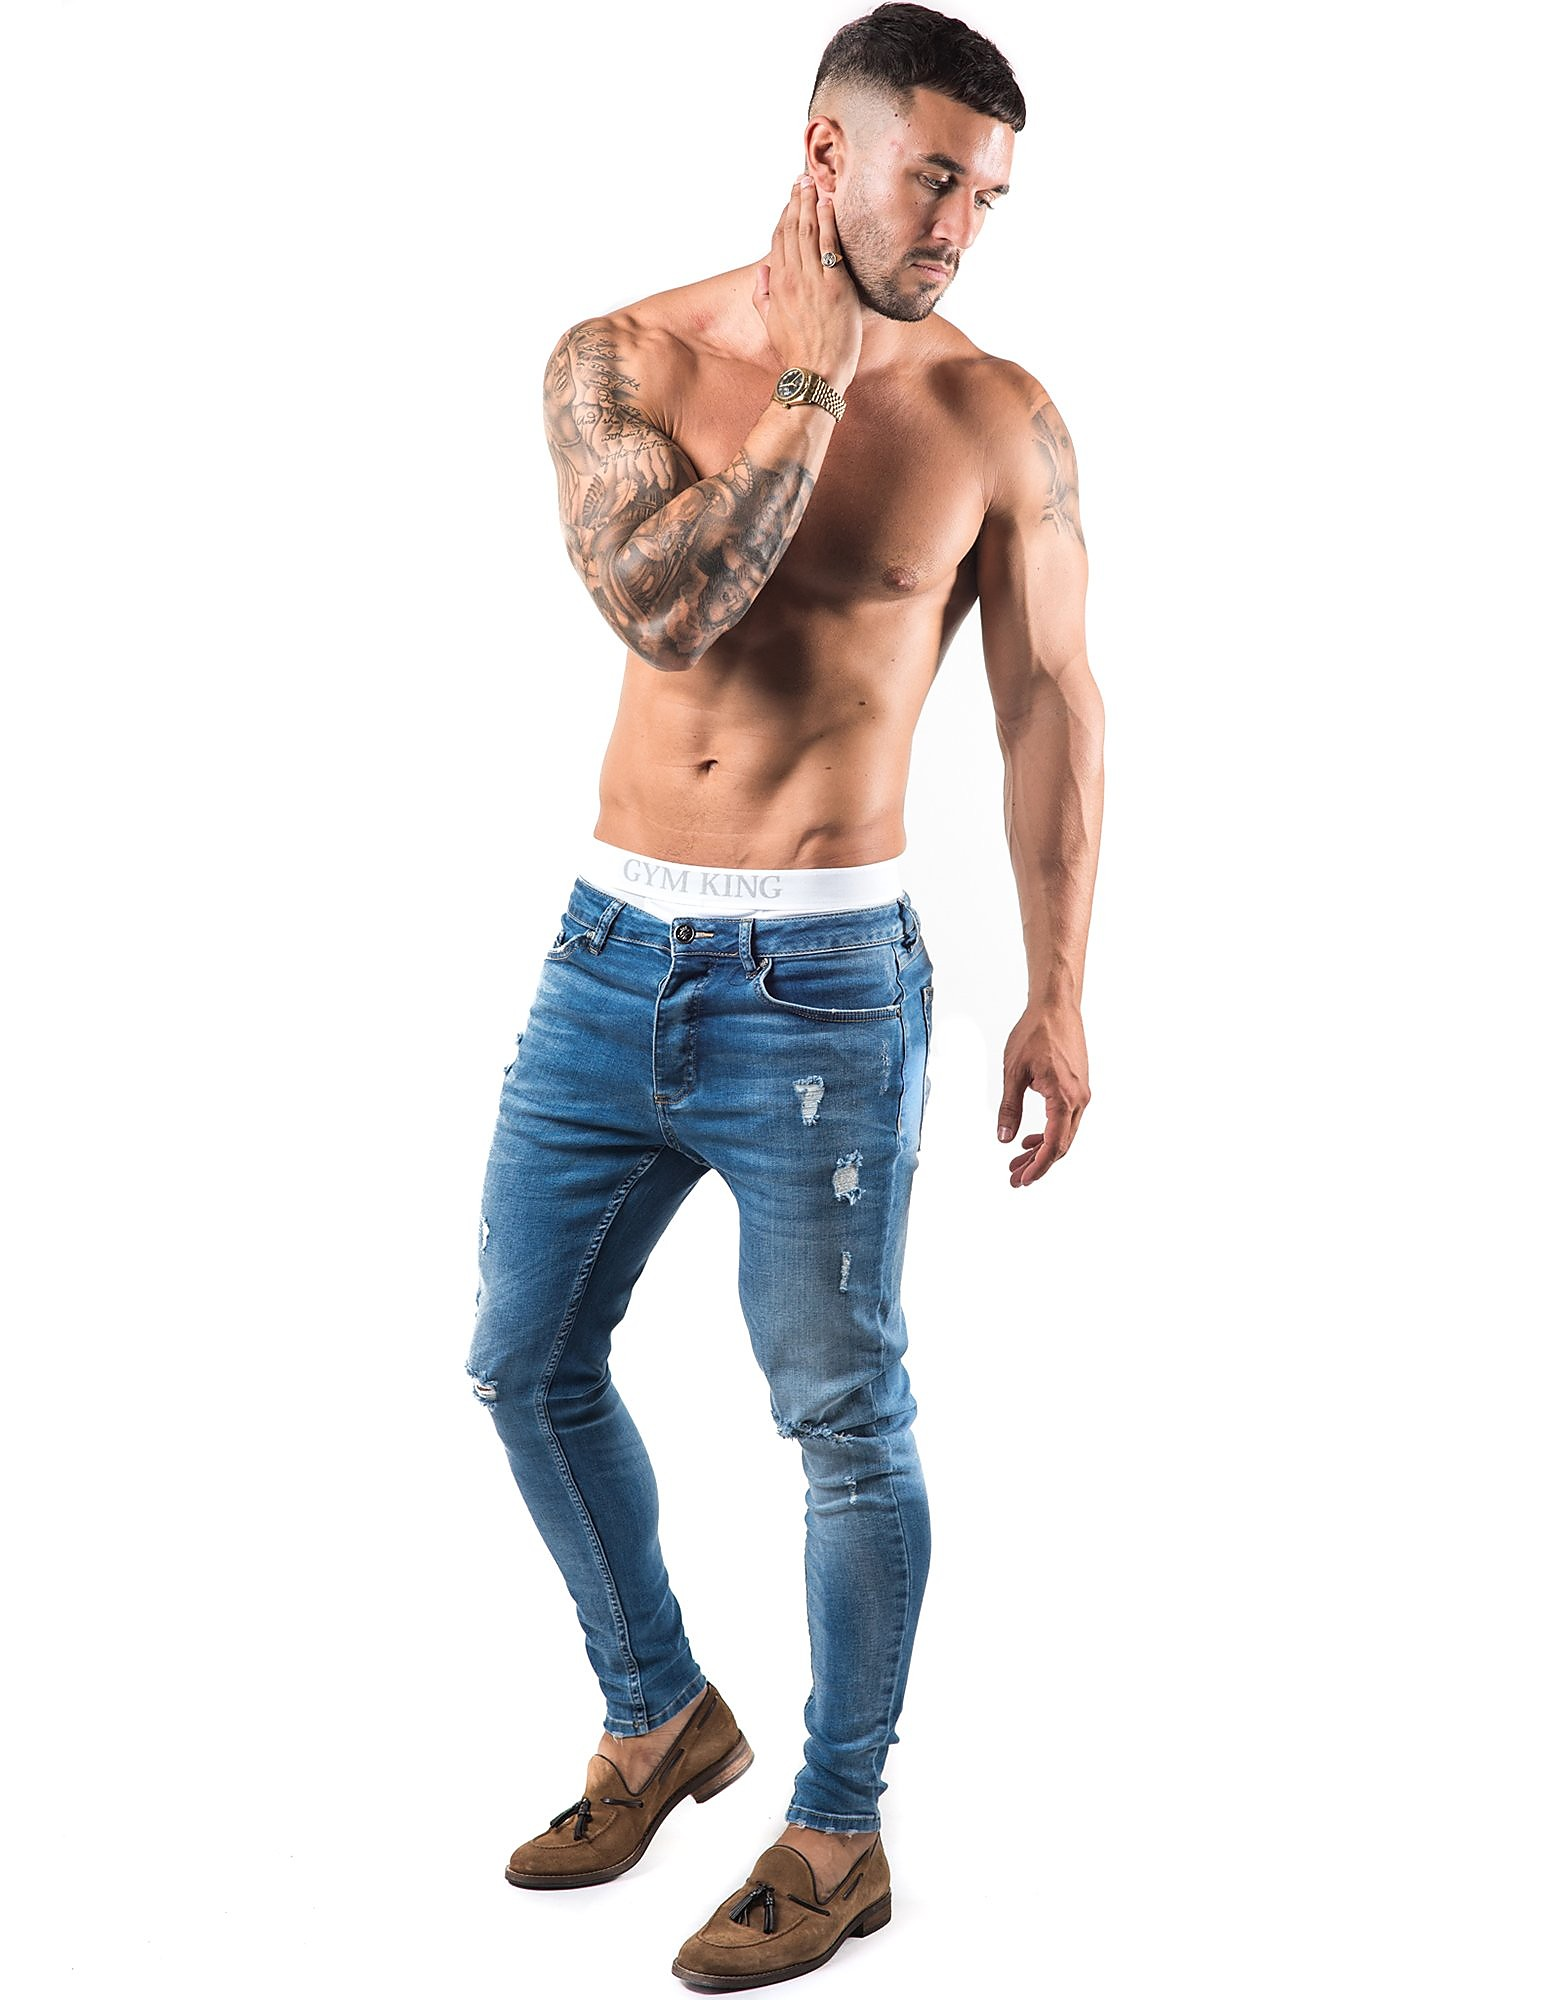 Gym King Distressed Denim Jeans